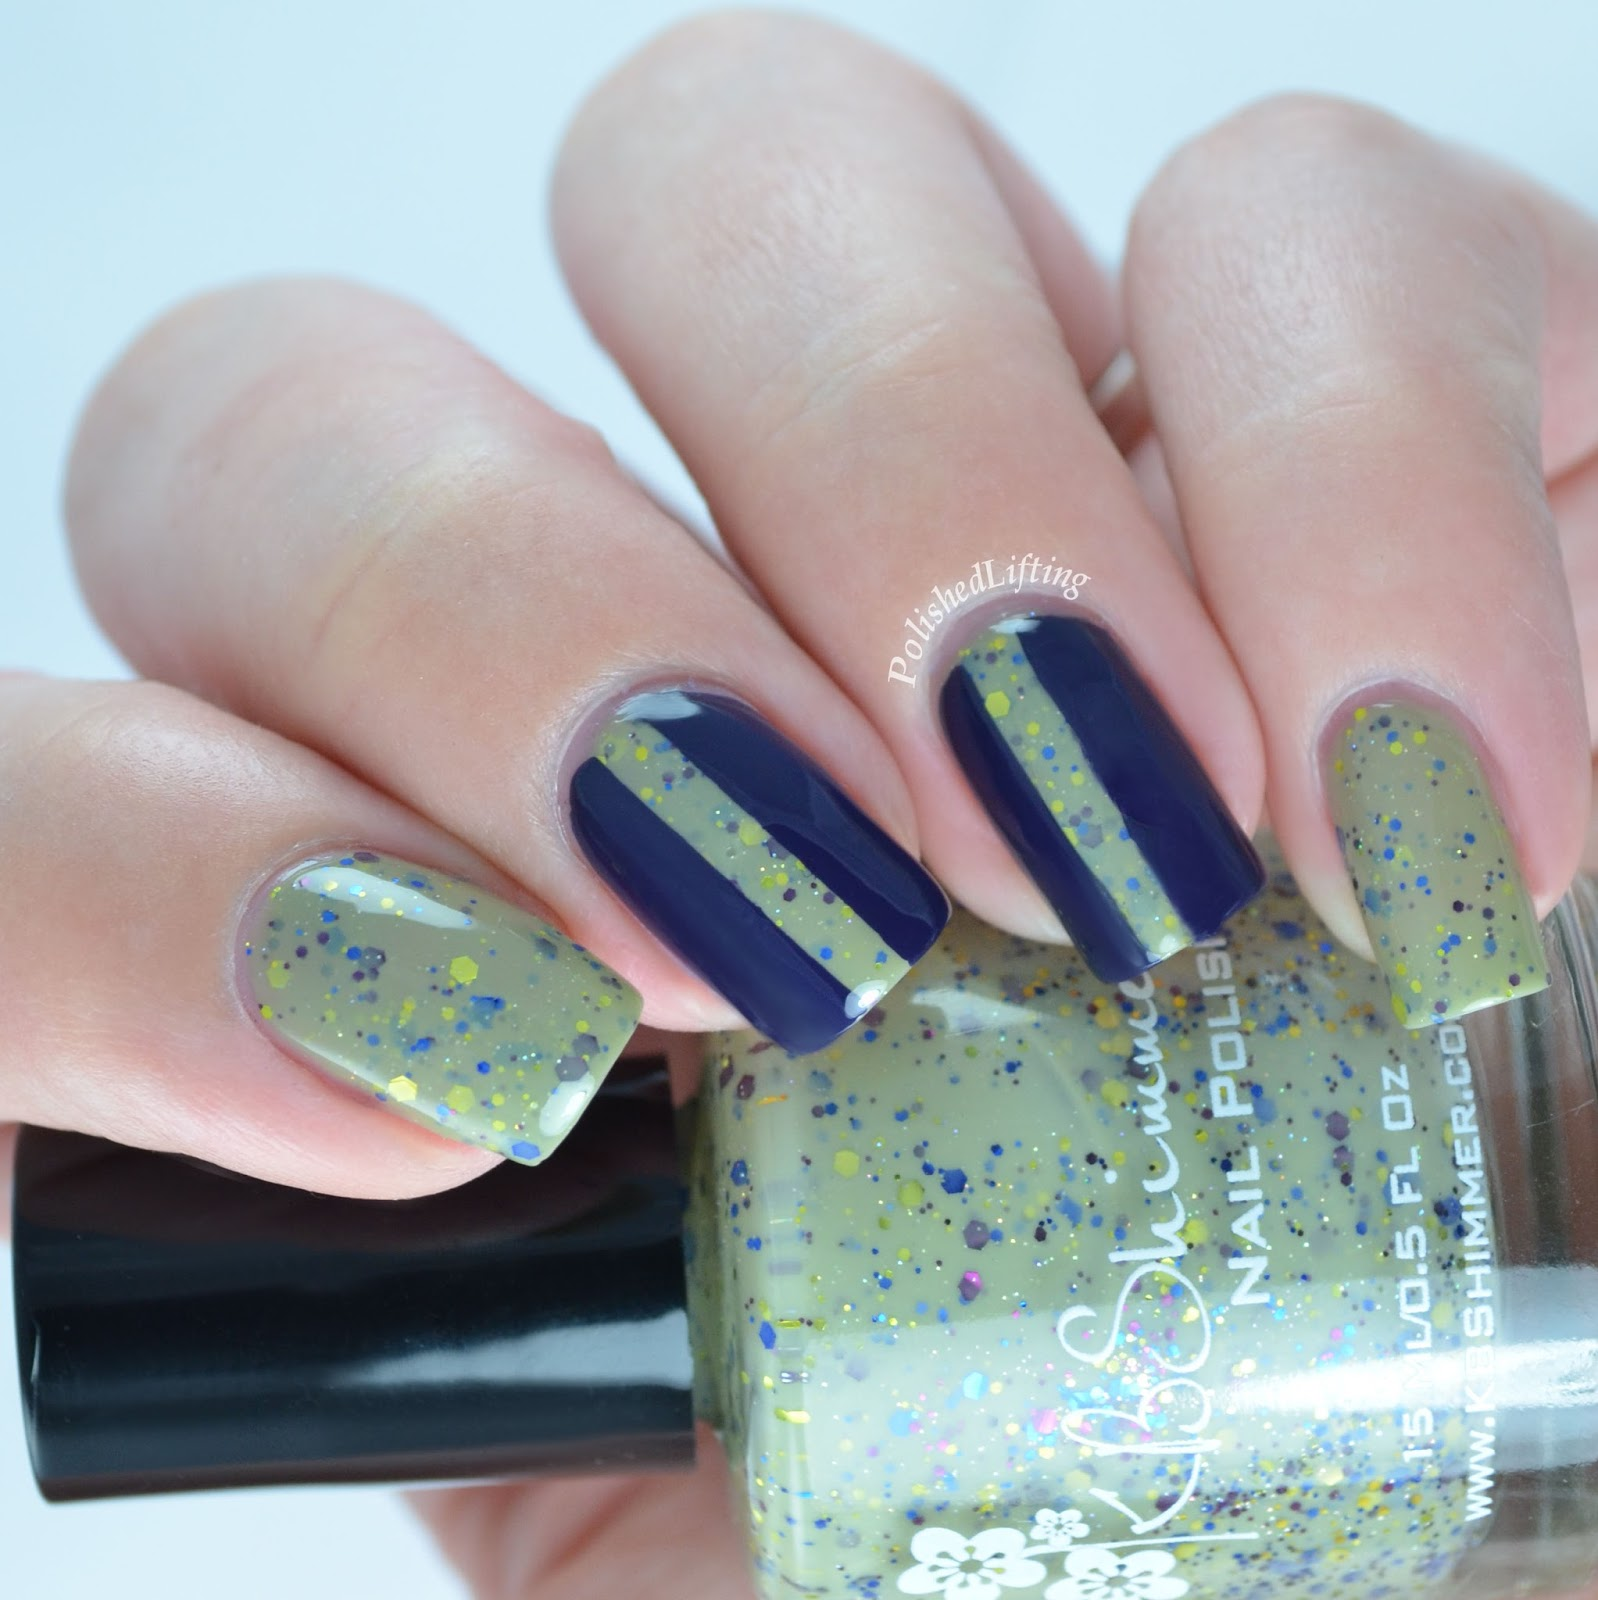 Polished Lifting: KBShimmer Open Toad Shoes Nail Art, Plus a Cuticle ...